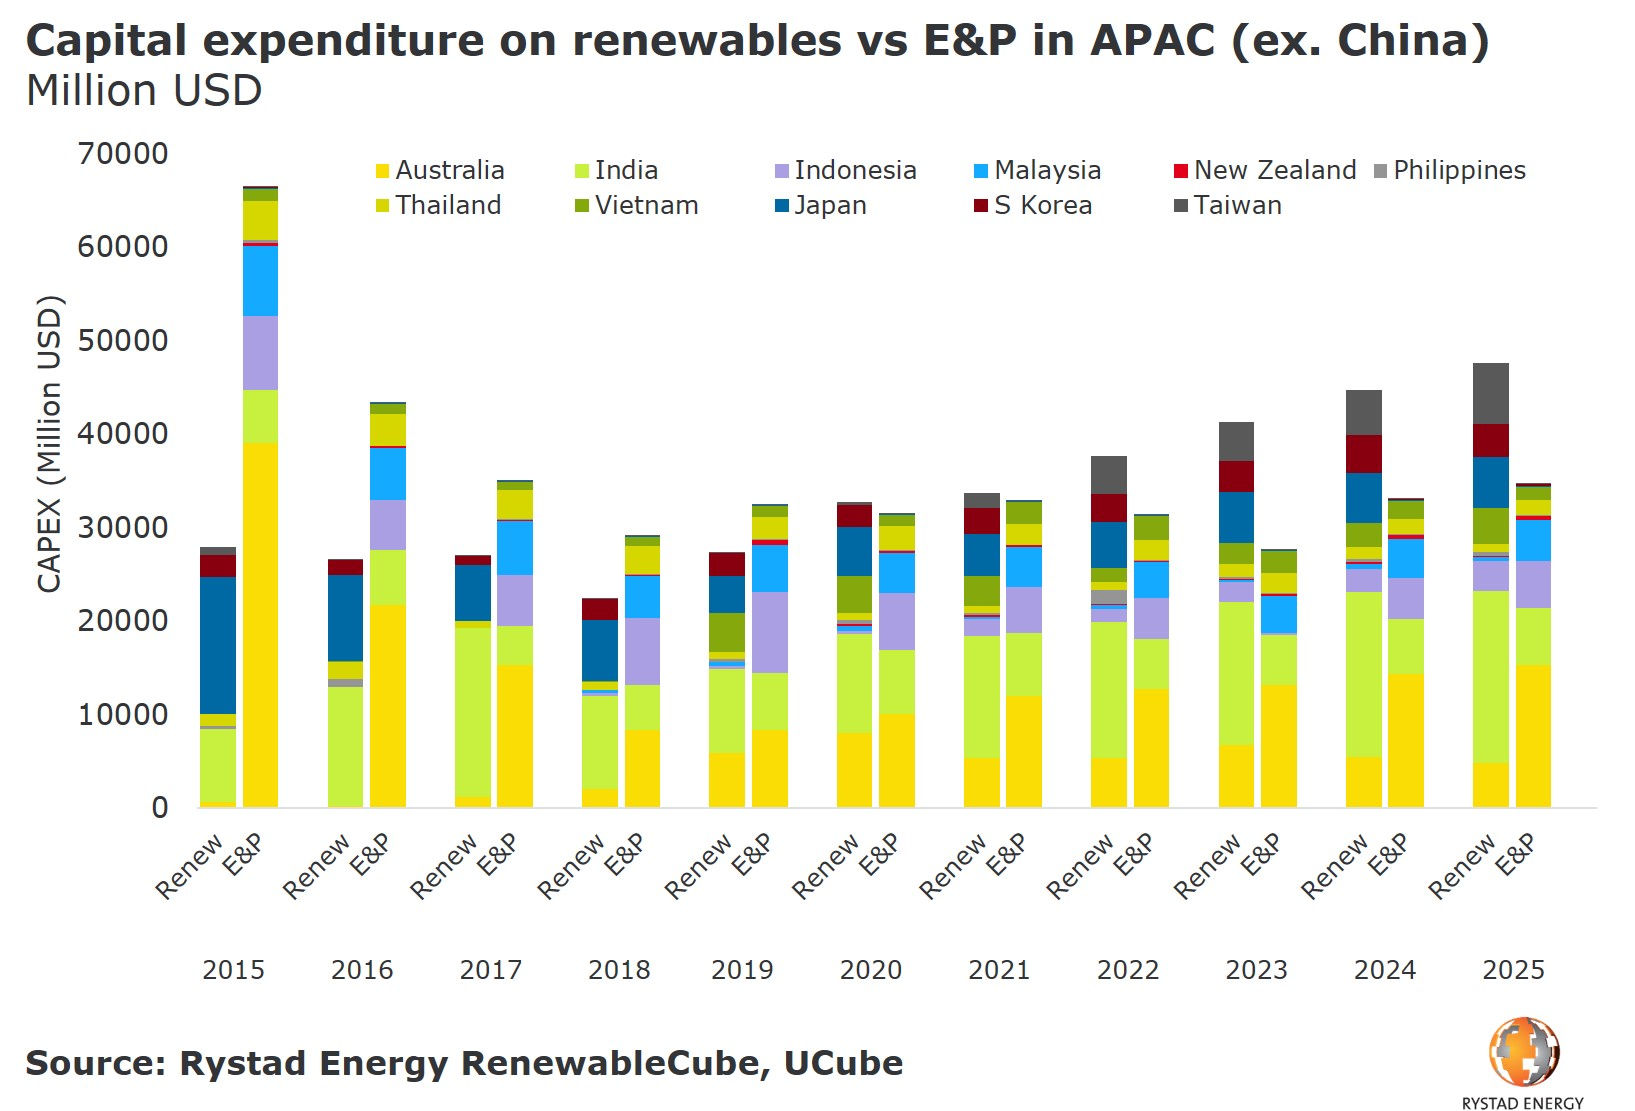 20190523_PR_Charts_Renewed energy in Asian Renew vs EP by country.jpg